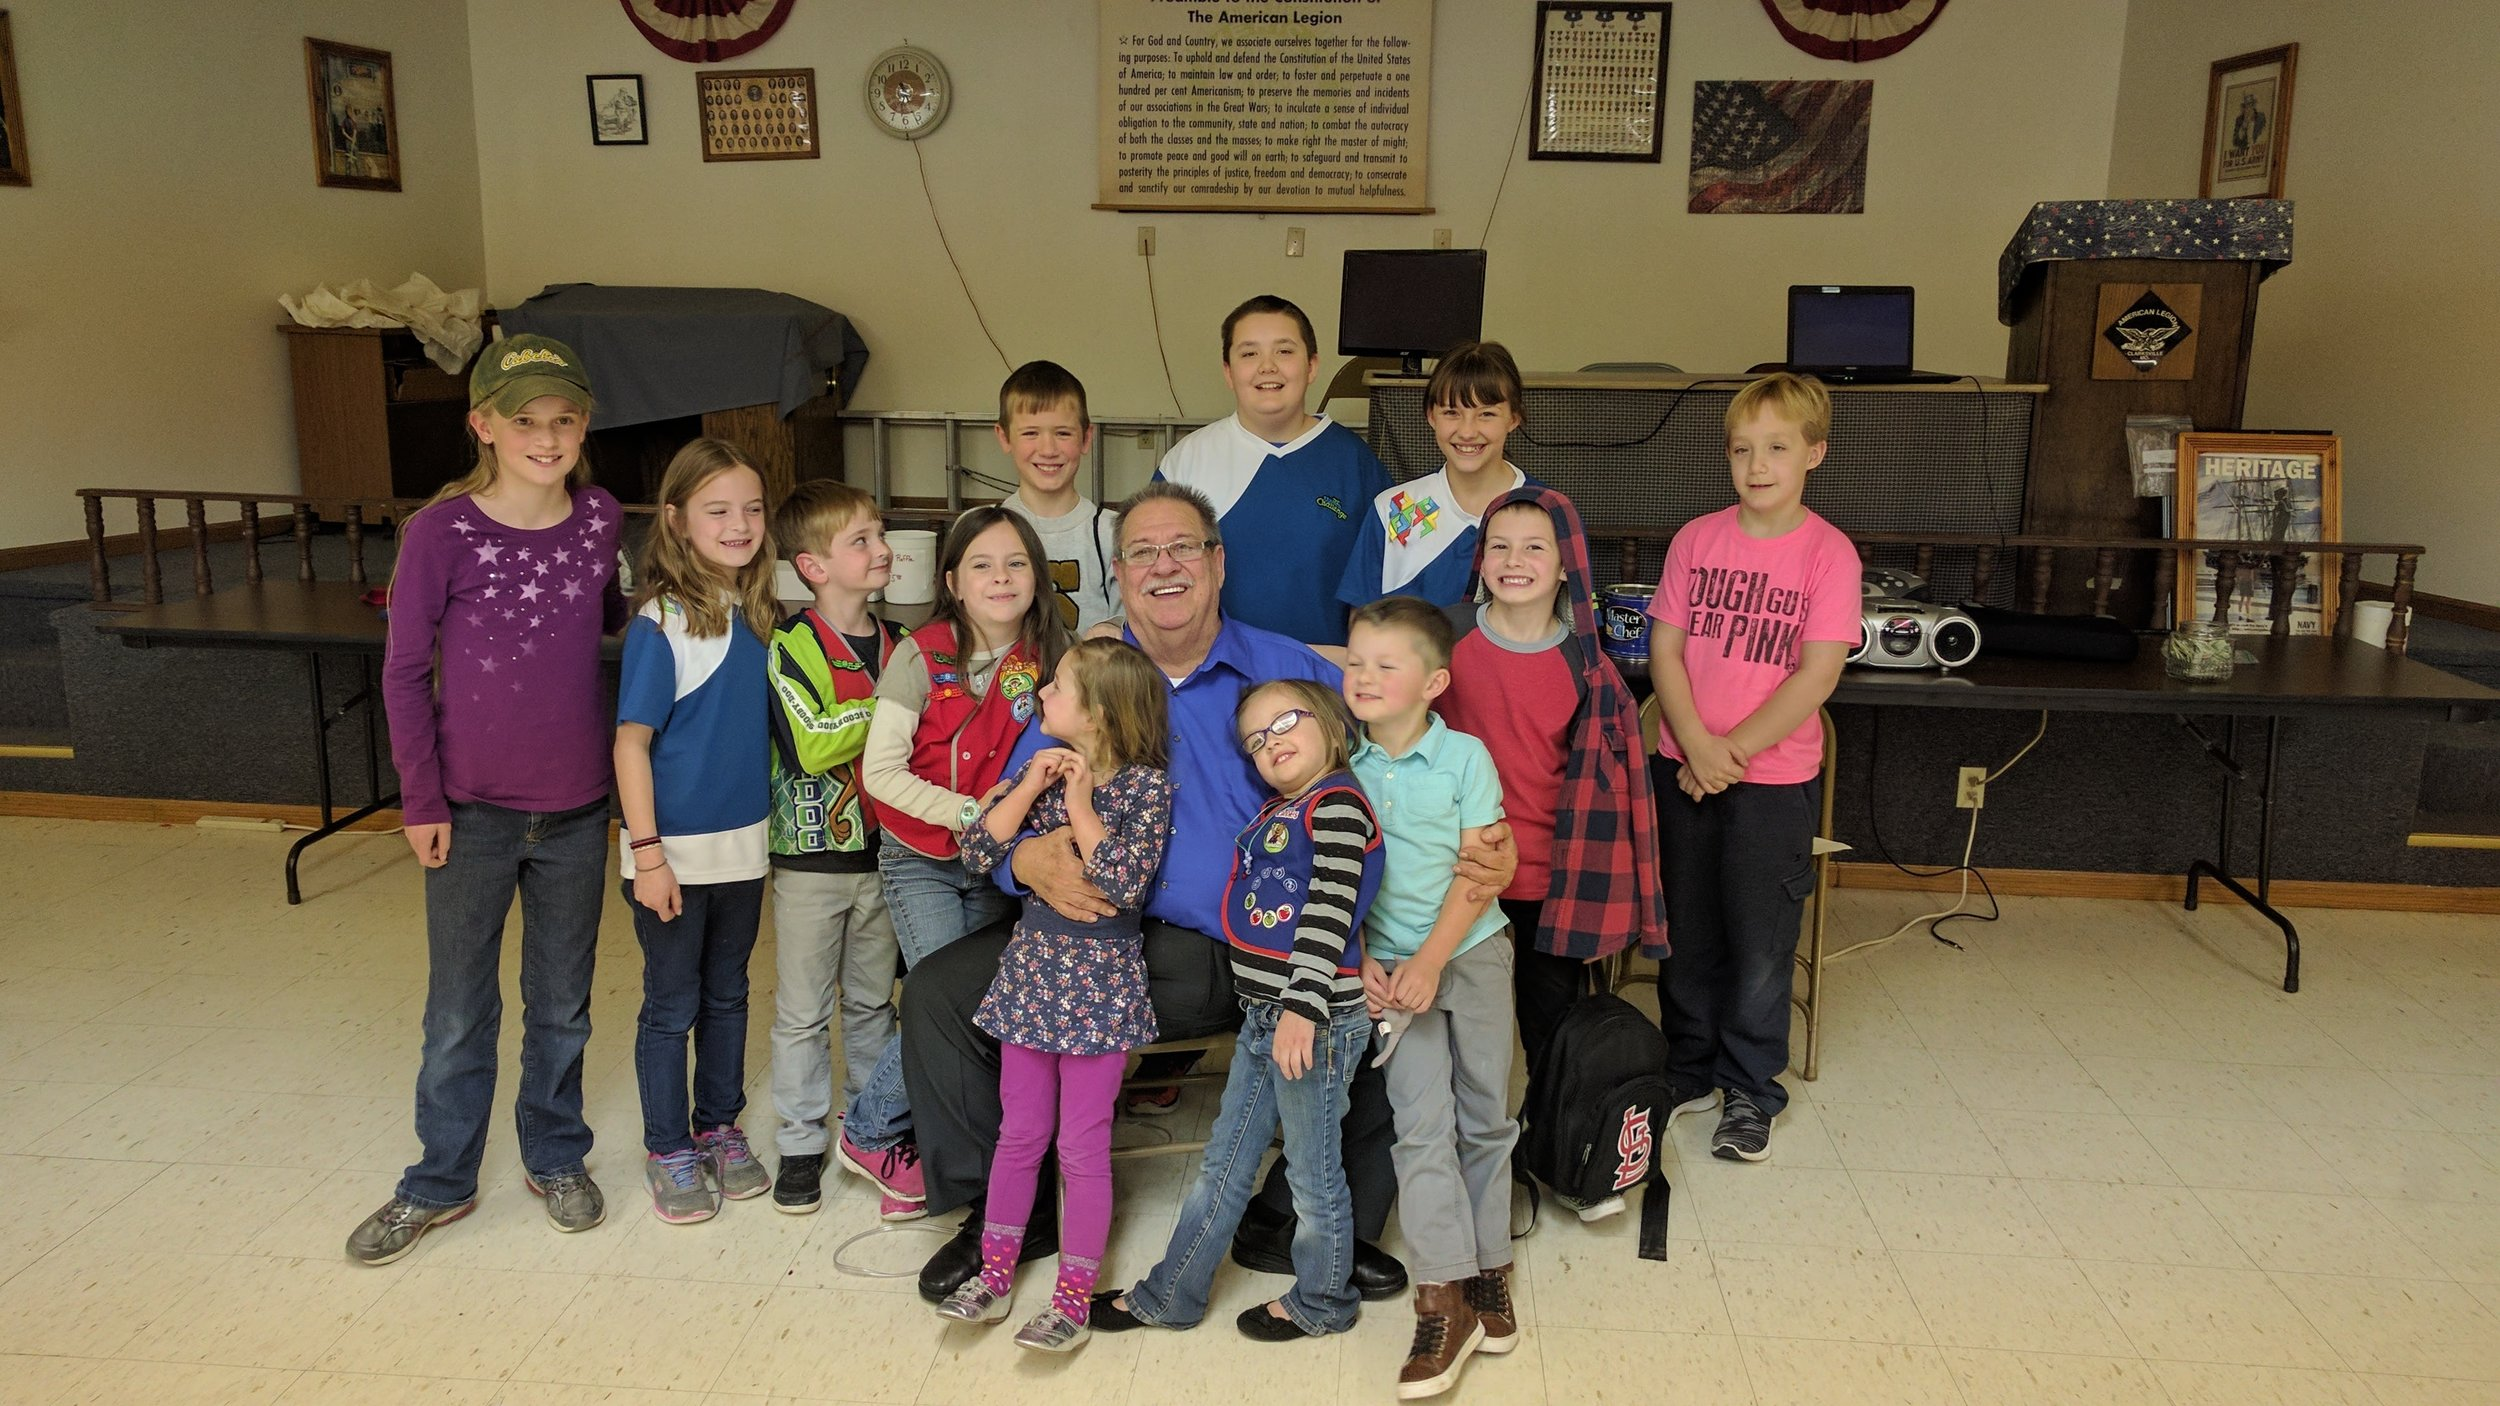 Dean Wallace with our AWANA kids.